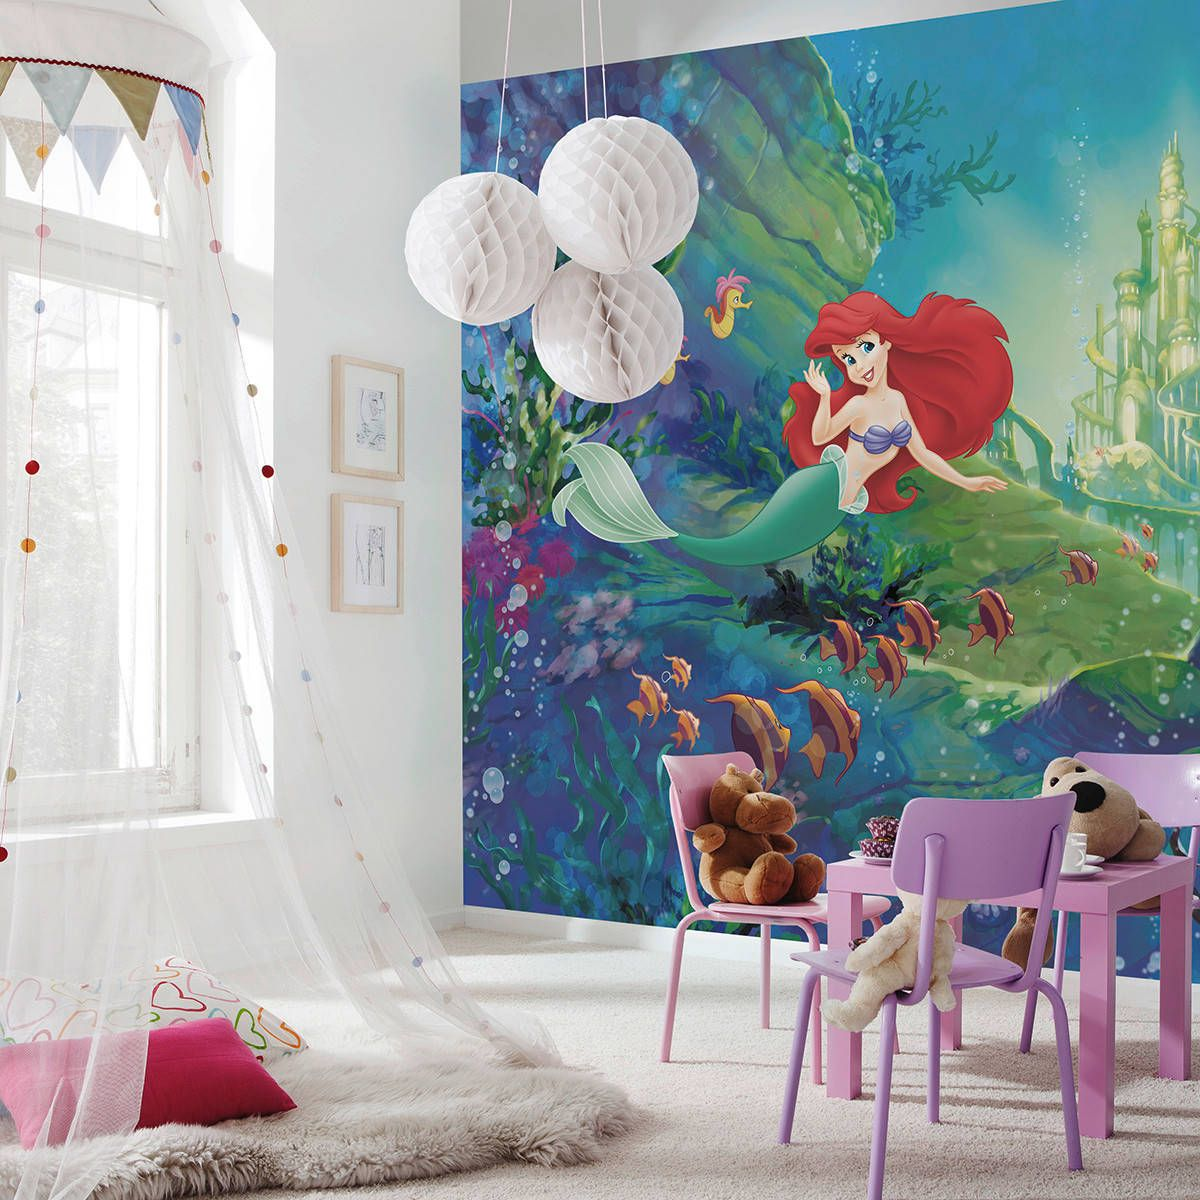 Perfect-little-playroom-for-your-little-princess-with-the-Little-Mermaid-mural-in-the-backdrop-47082